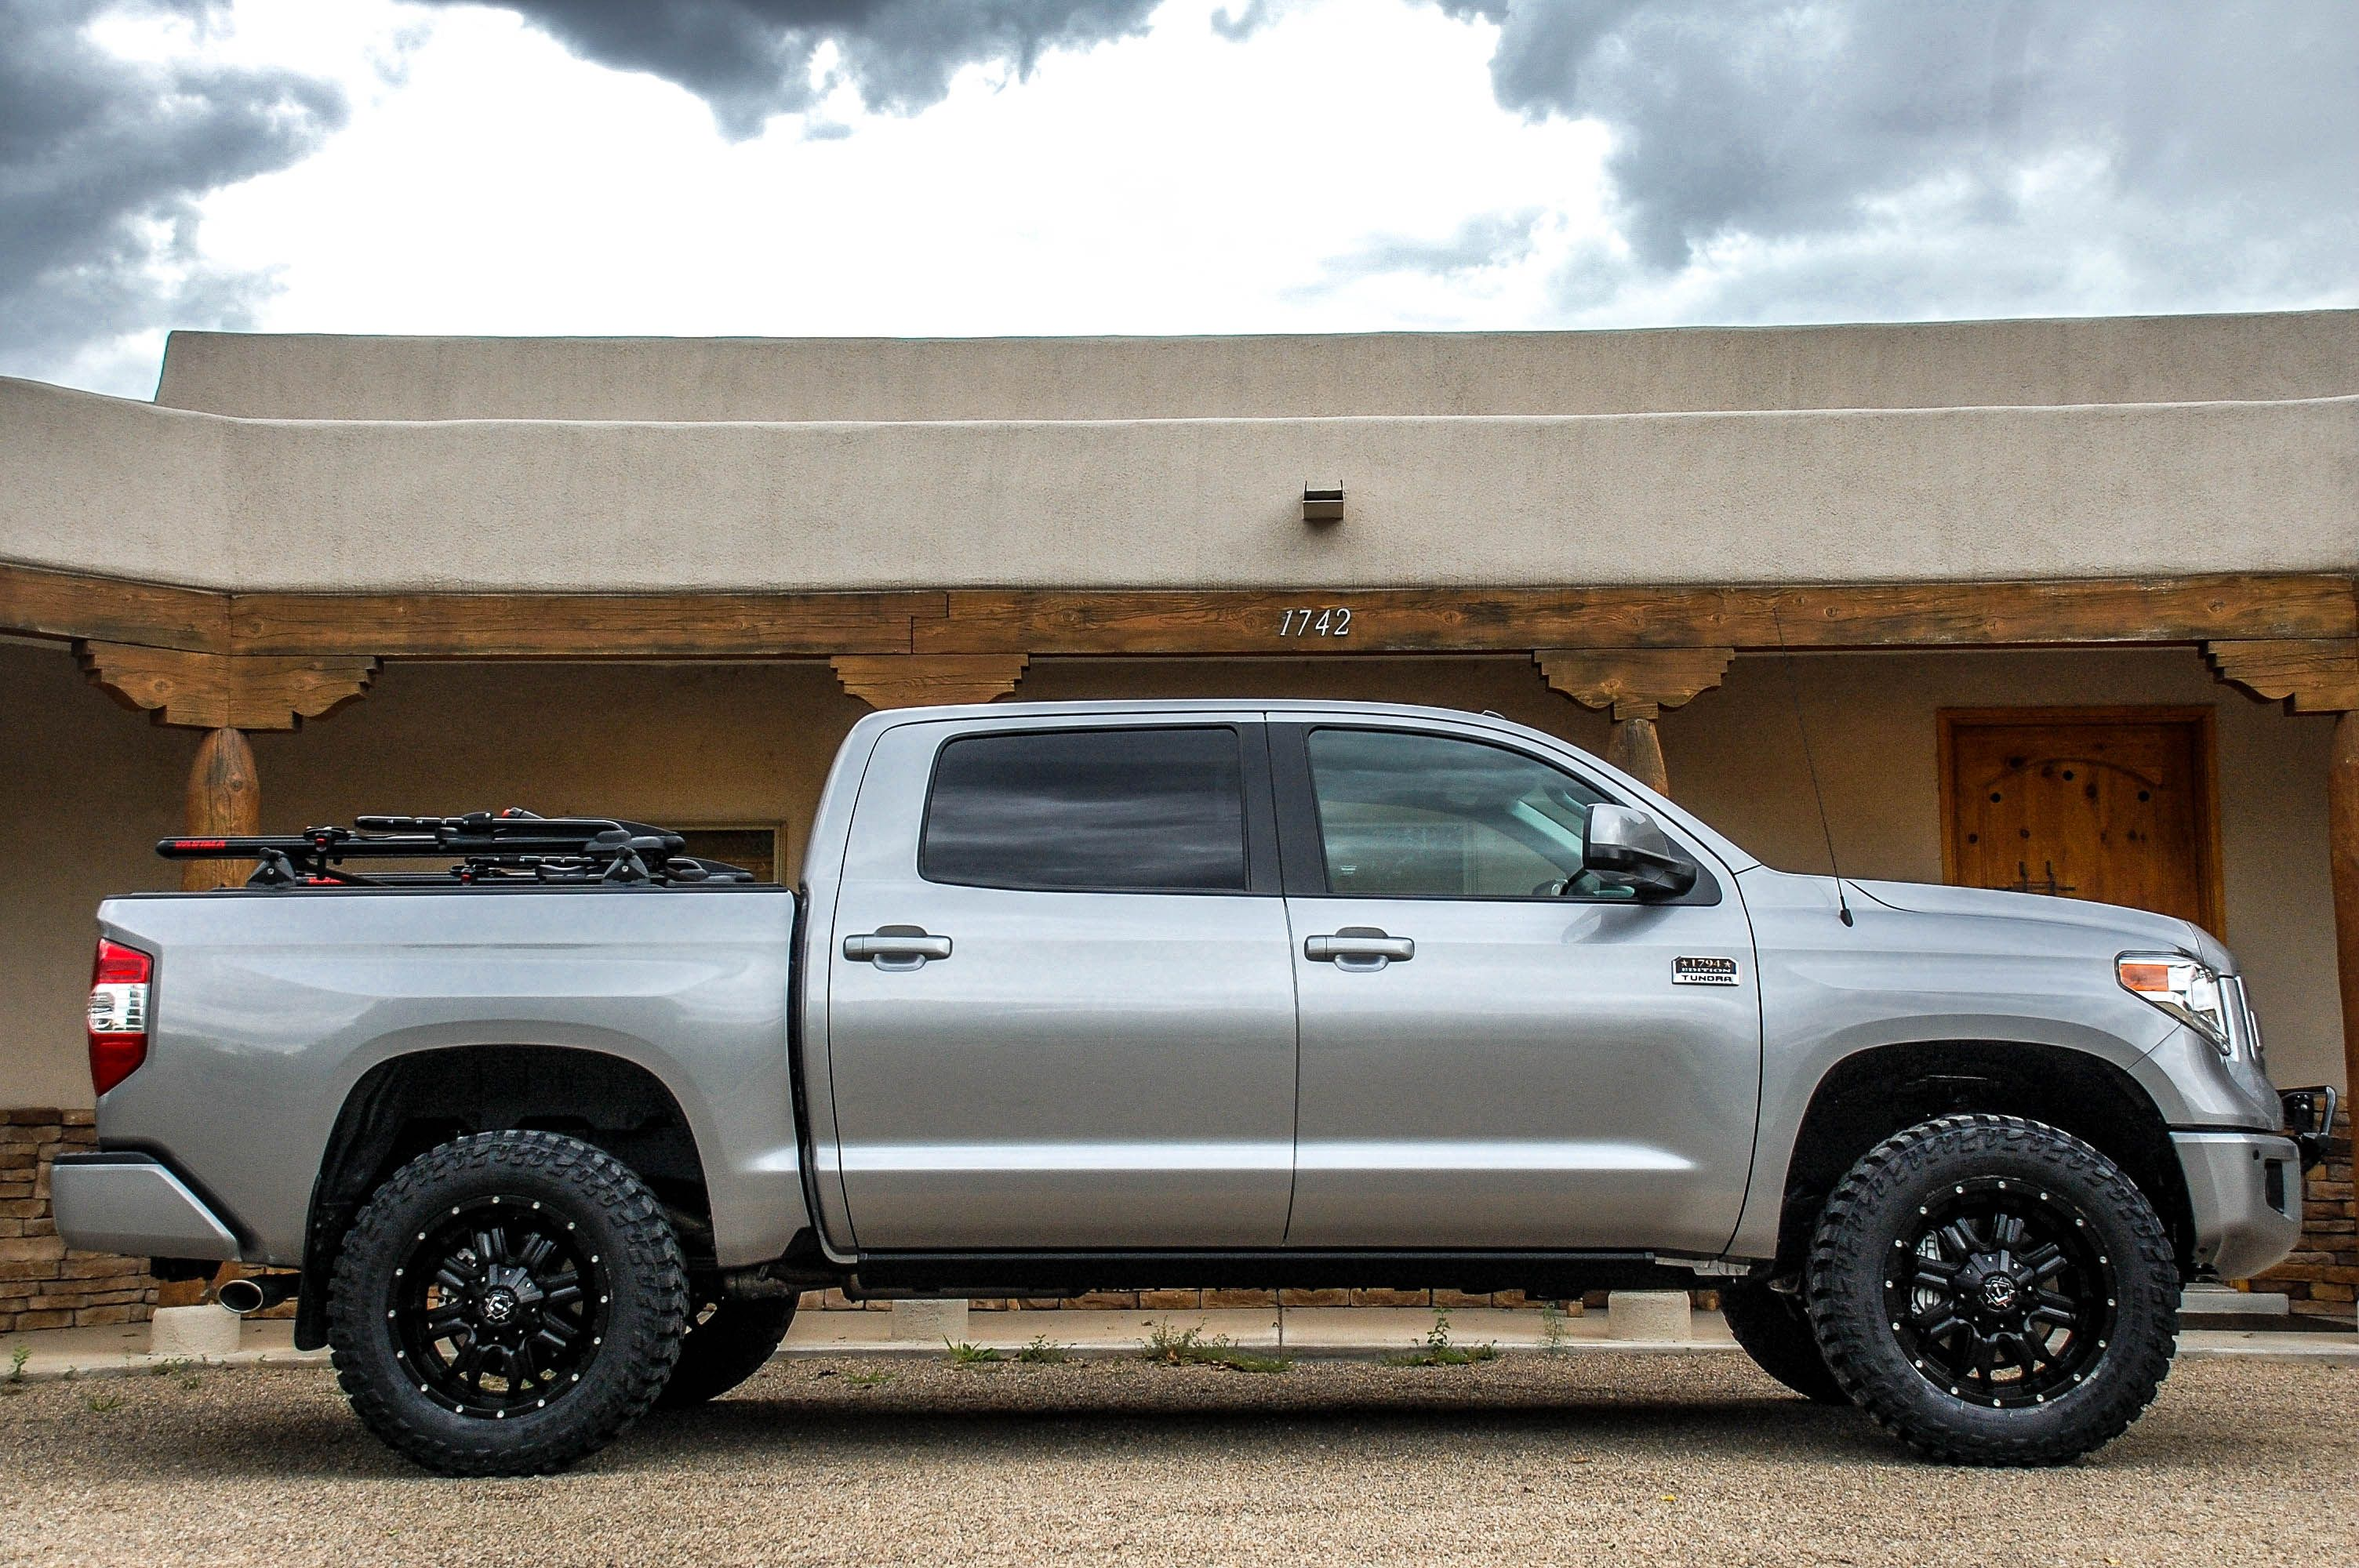 Paul Fensterer uploaded this image to 2015 Toyota Tundra 1794